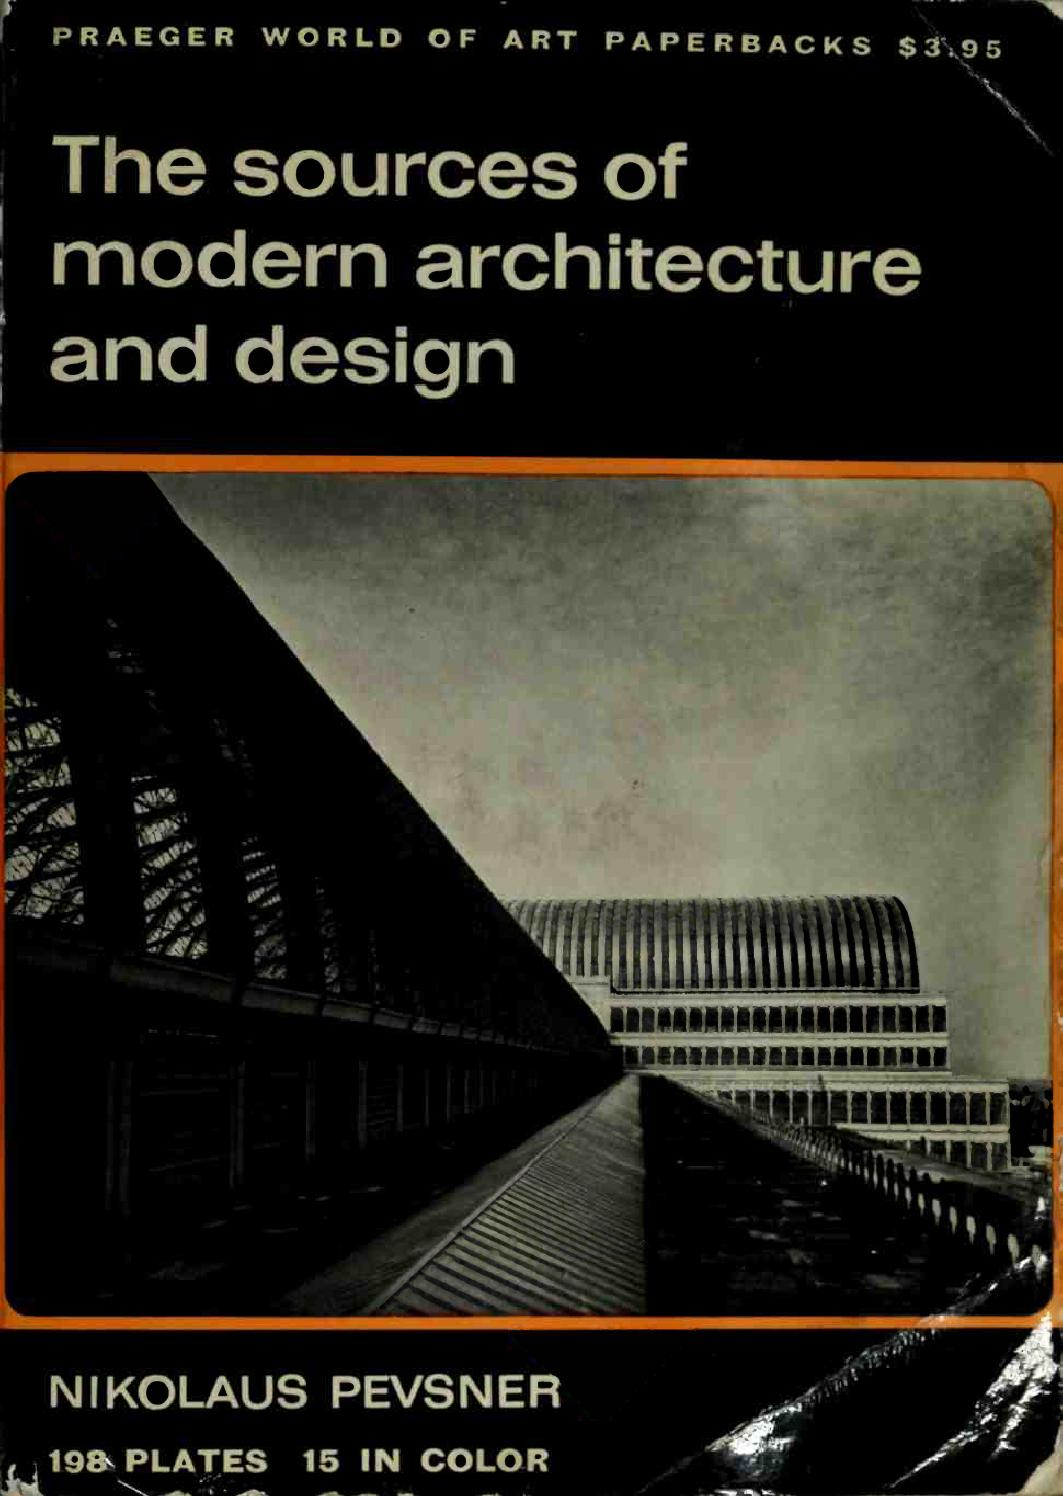 The sources of modern architecture and design 1968 art ebook by art sf blog issuu